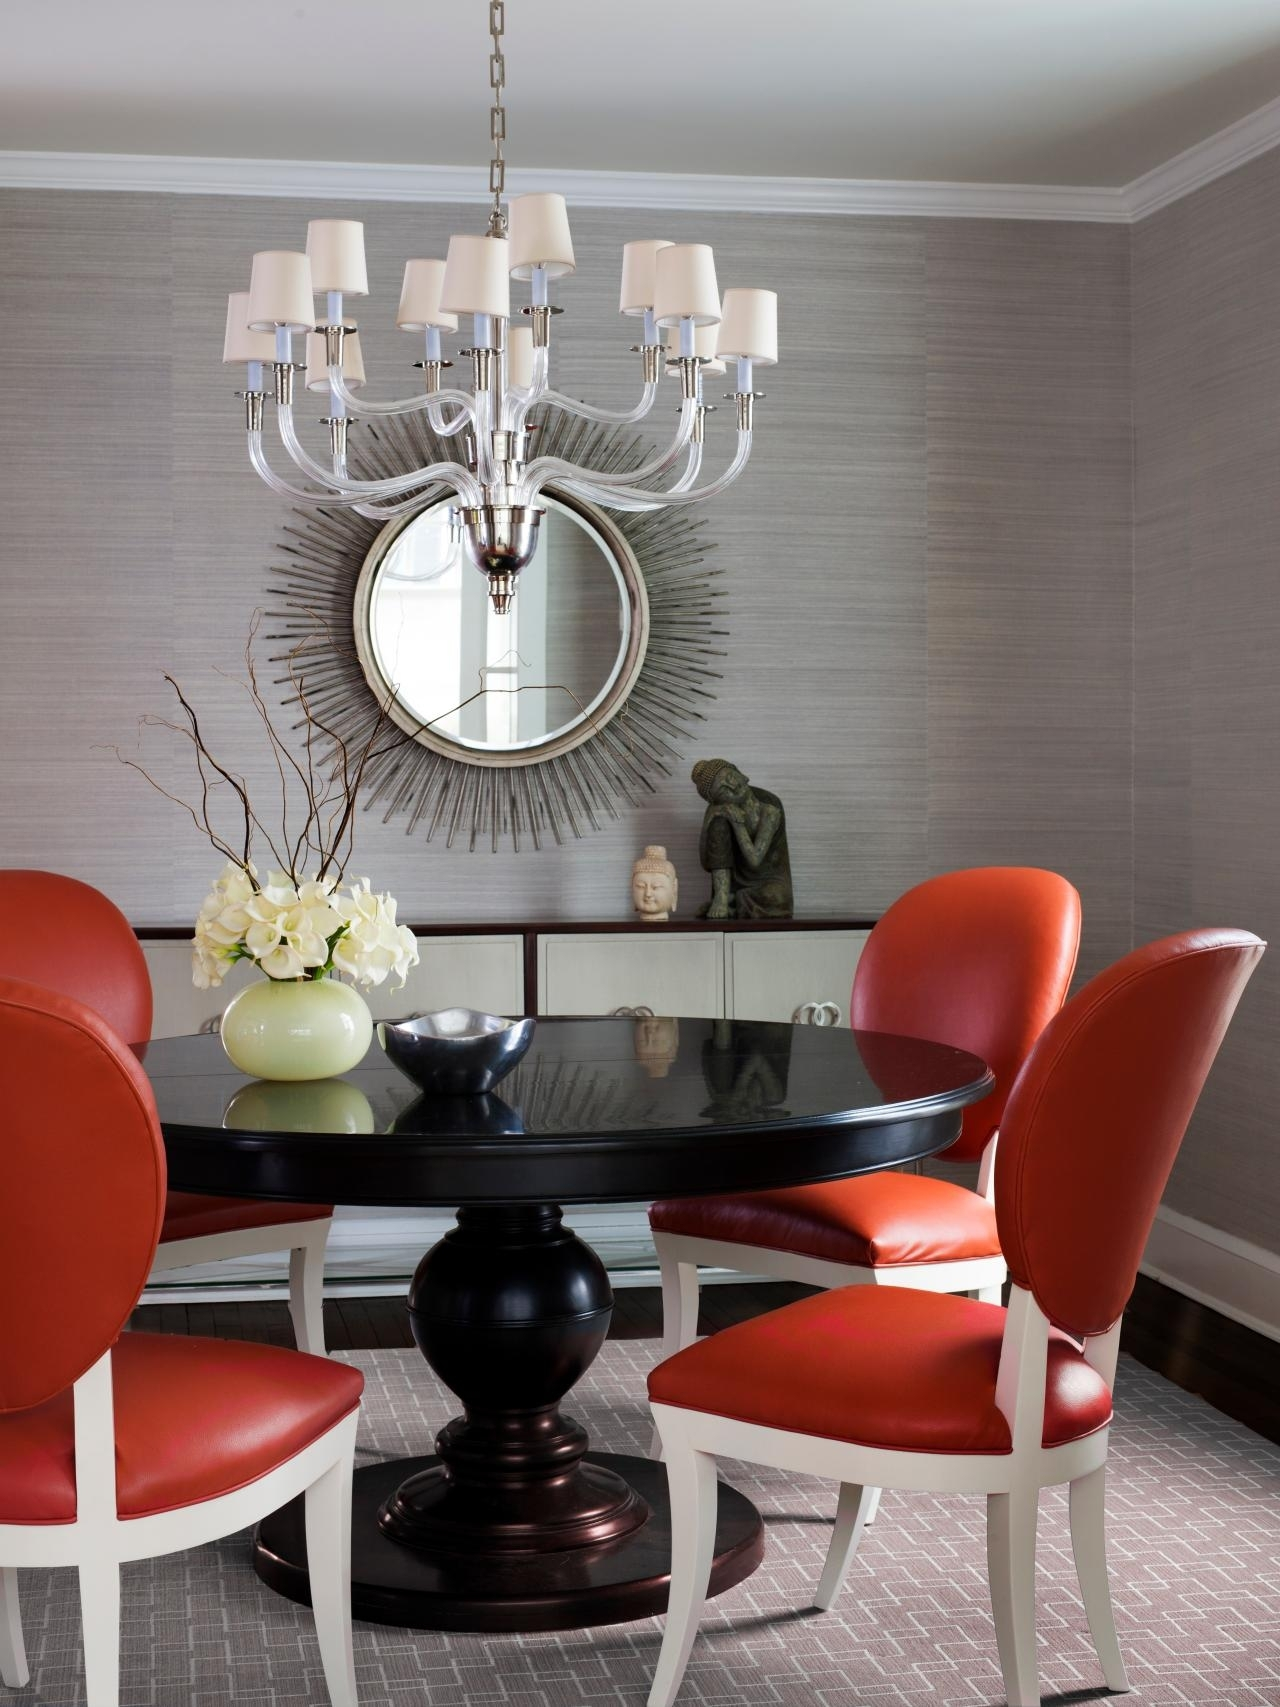 15 Ways To Dress Up Your Dining Room Walls | Hgtv's Decorating Intended For Most Popular Dining Room Wall Accents (View 1 of 15)